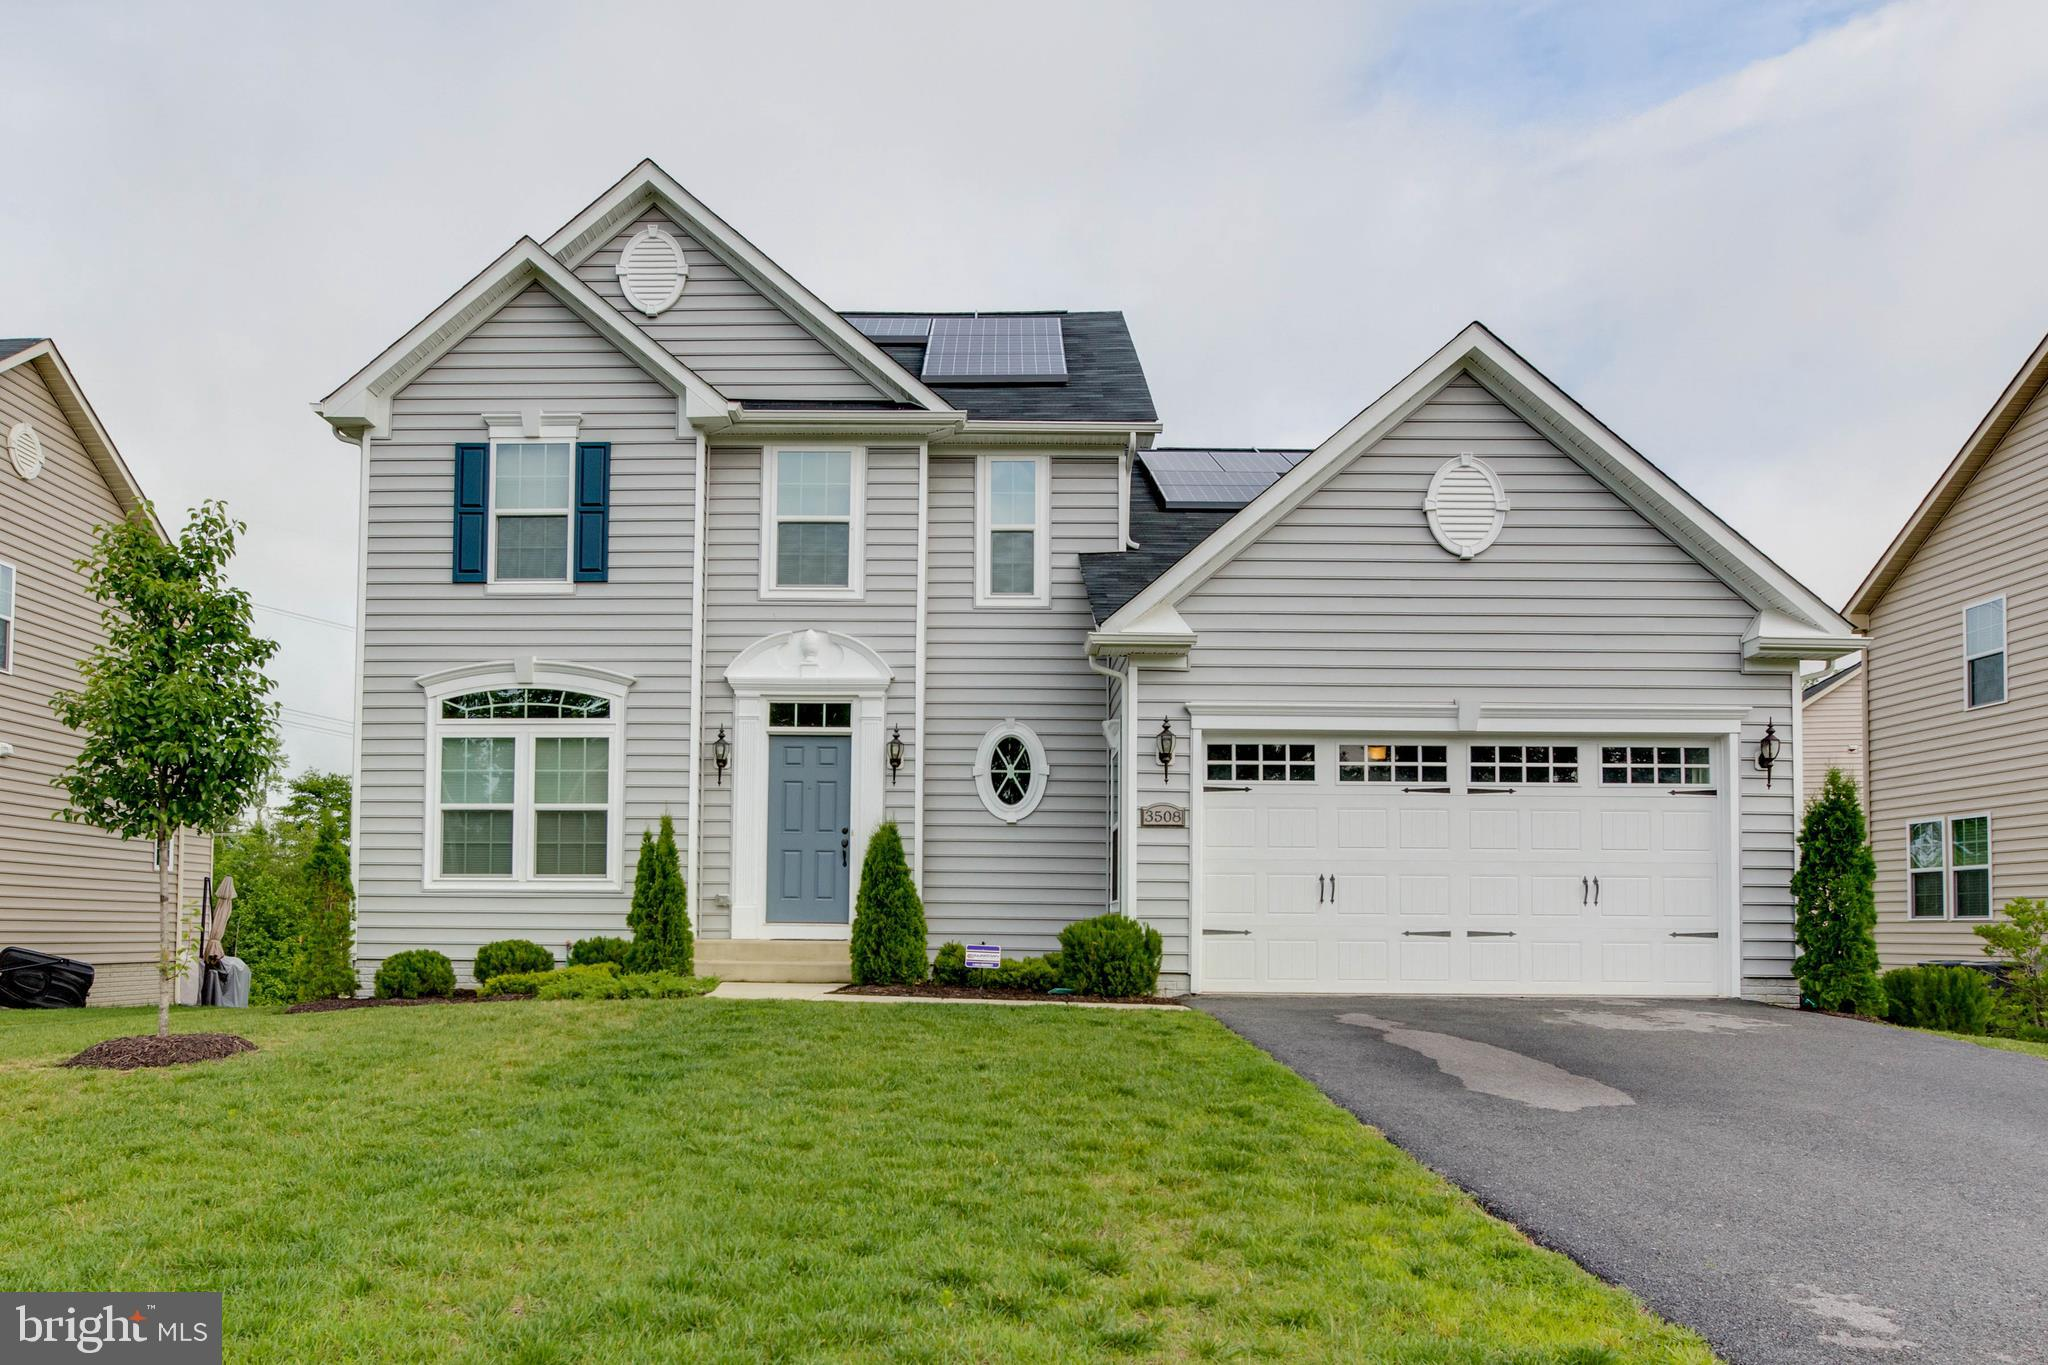 This spotless home shows like a model! Built in 2014 this gorgeous 4BR 3 1/2 bath home includes hard